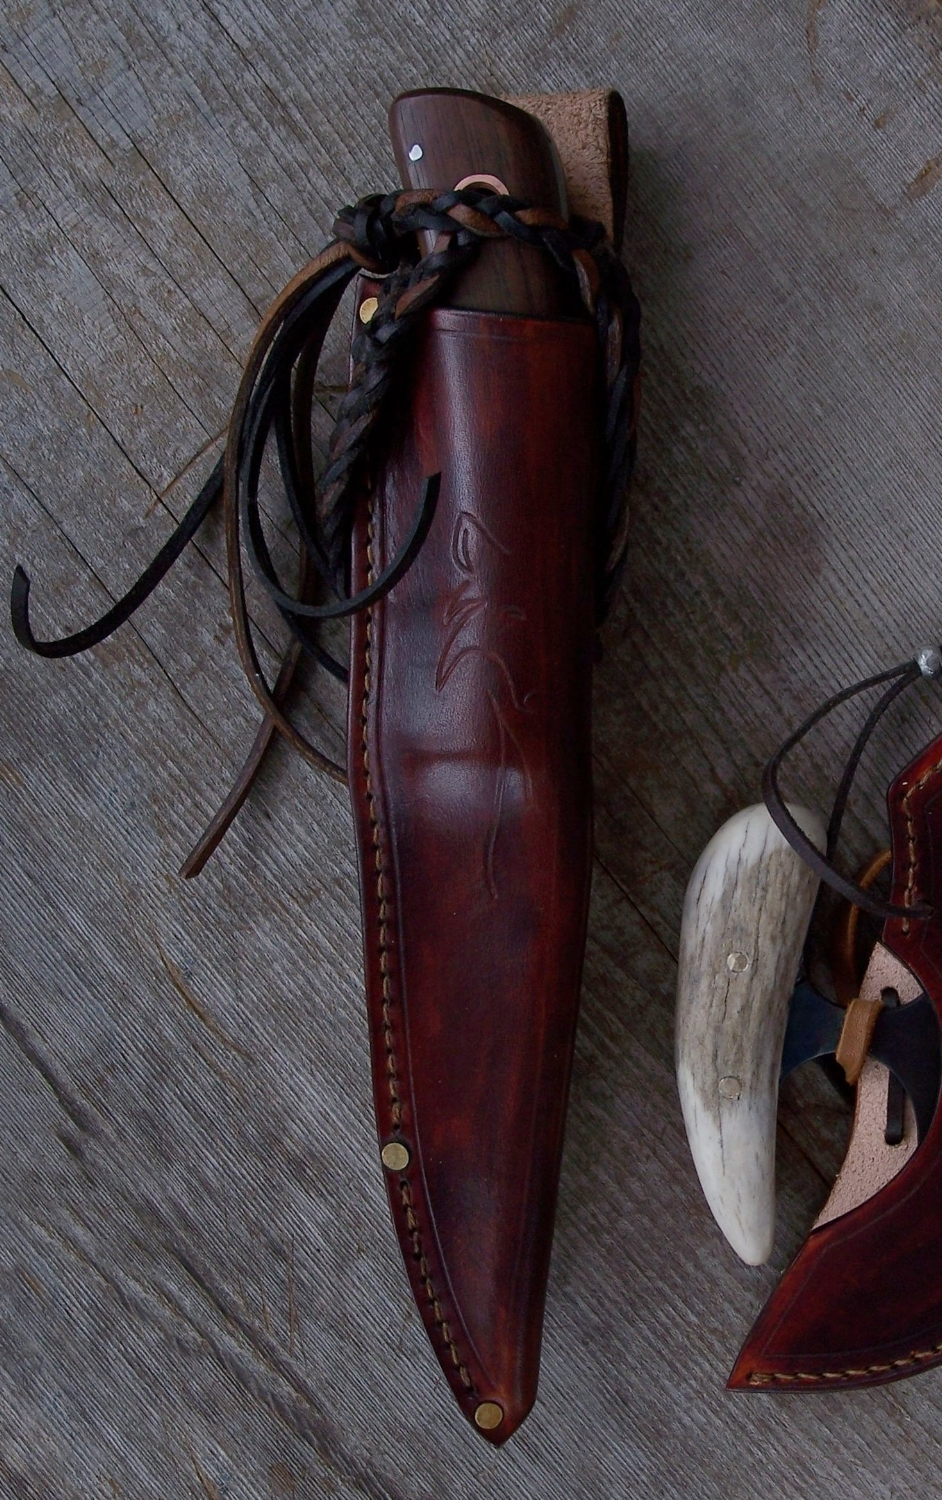 Long locking lanyard for knife security on the Kootenay hunting knife sheath.